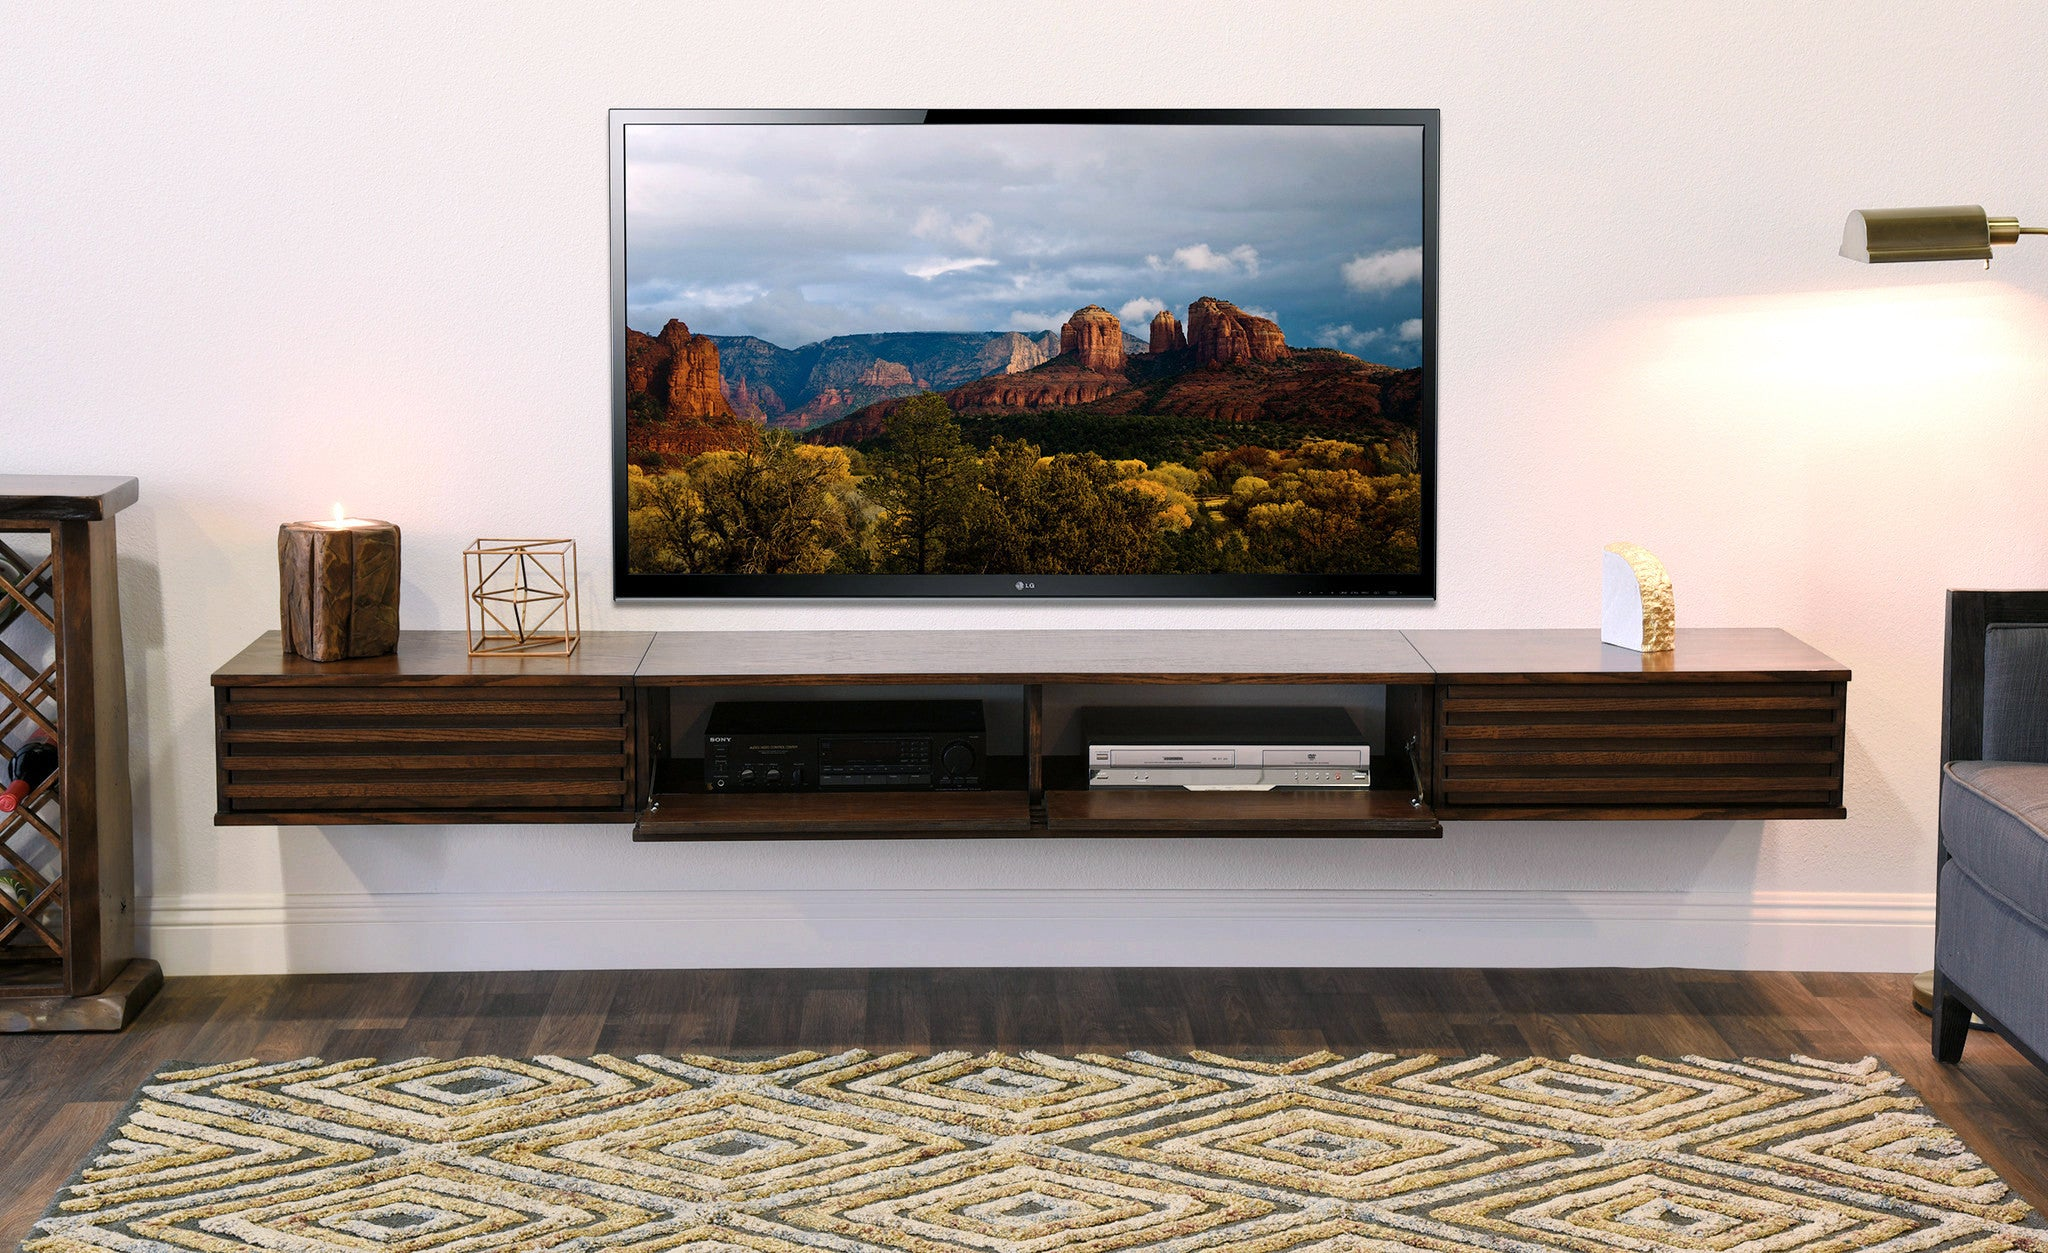 floating tv stand wall mount entertainment center  lotus  piece  russetbrown. floating tv stand wall mount entertainment center  lotus  piece